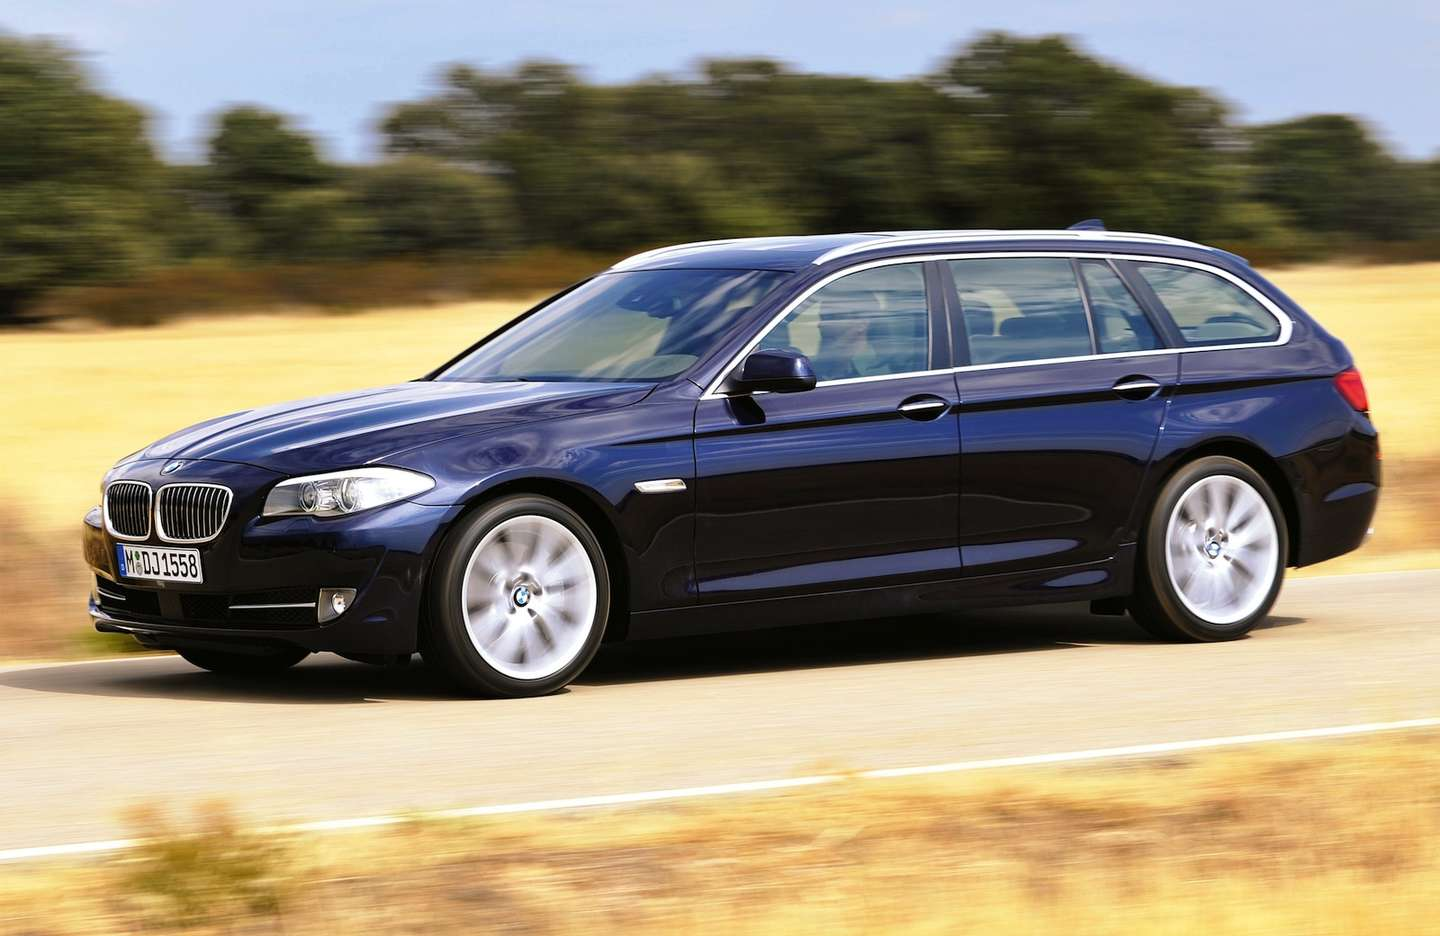 BMW 5-series Touring #7201049